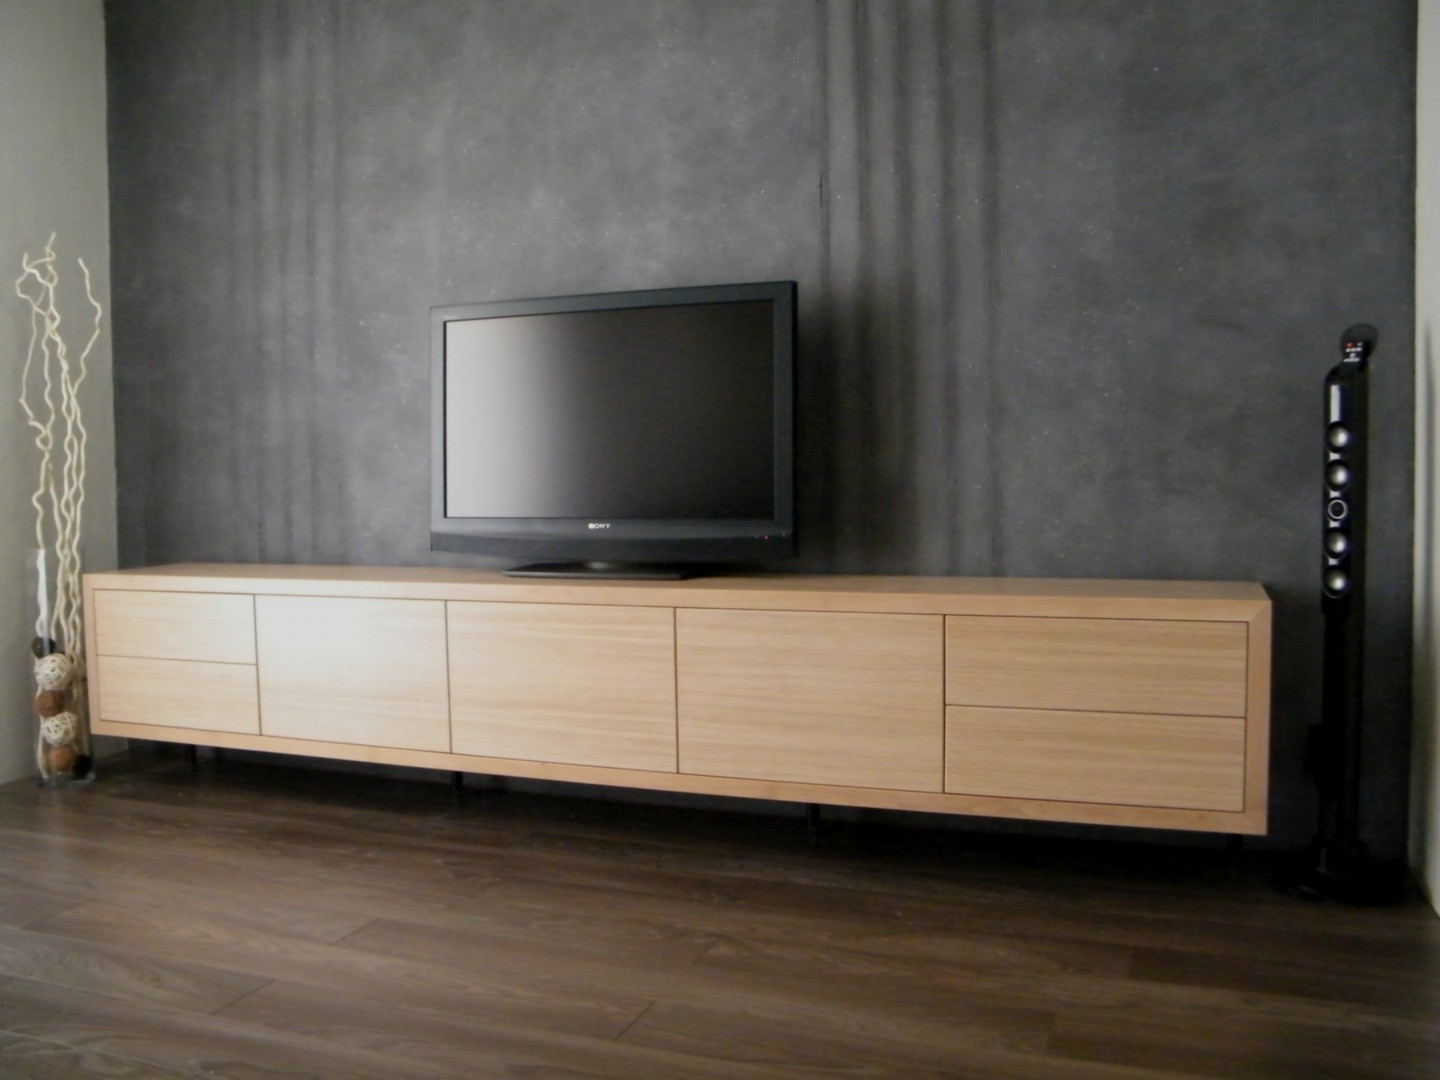 meuble tv bas et long bois id es de d coration. Black Bedroom Furniture Sets. Home Design Ideas